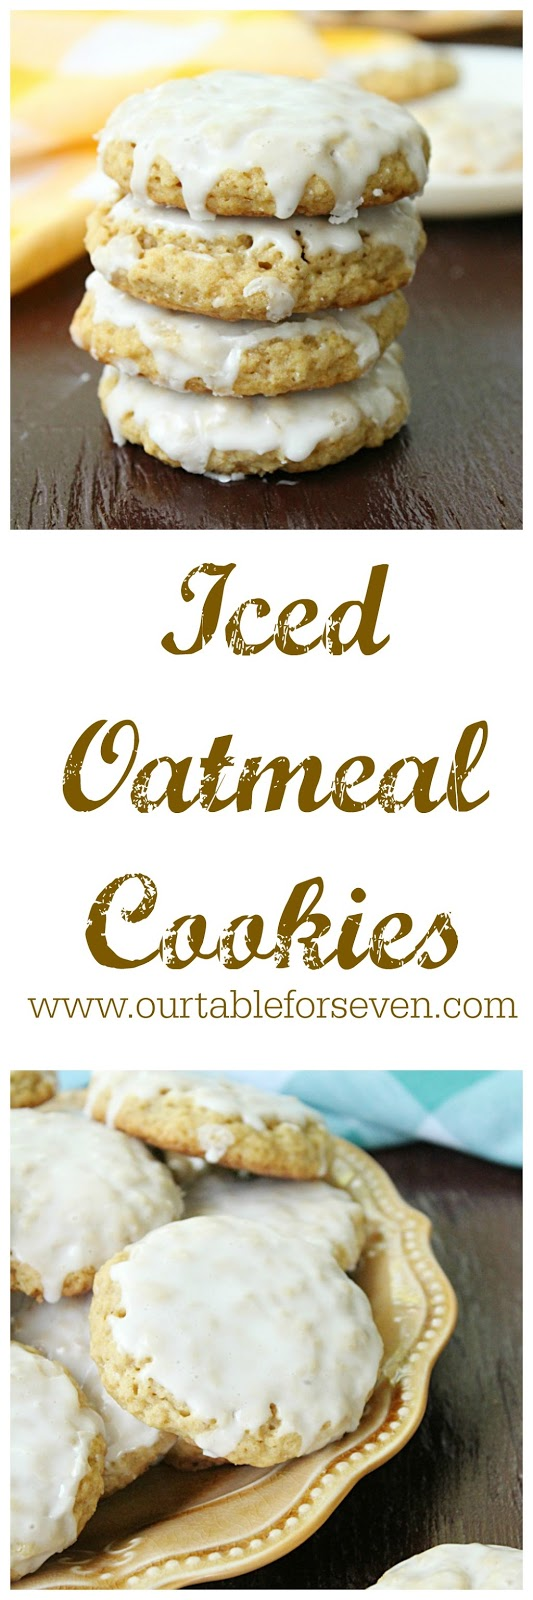 Iced Oatmeal Cookies from Table for Seven: Soft, chewy oatmeal cookies with a powdered sugar icing.